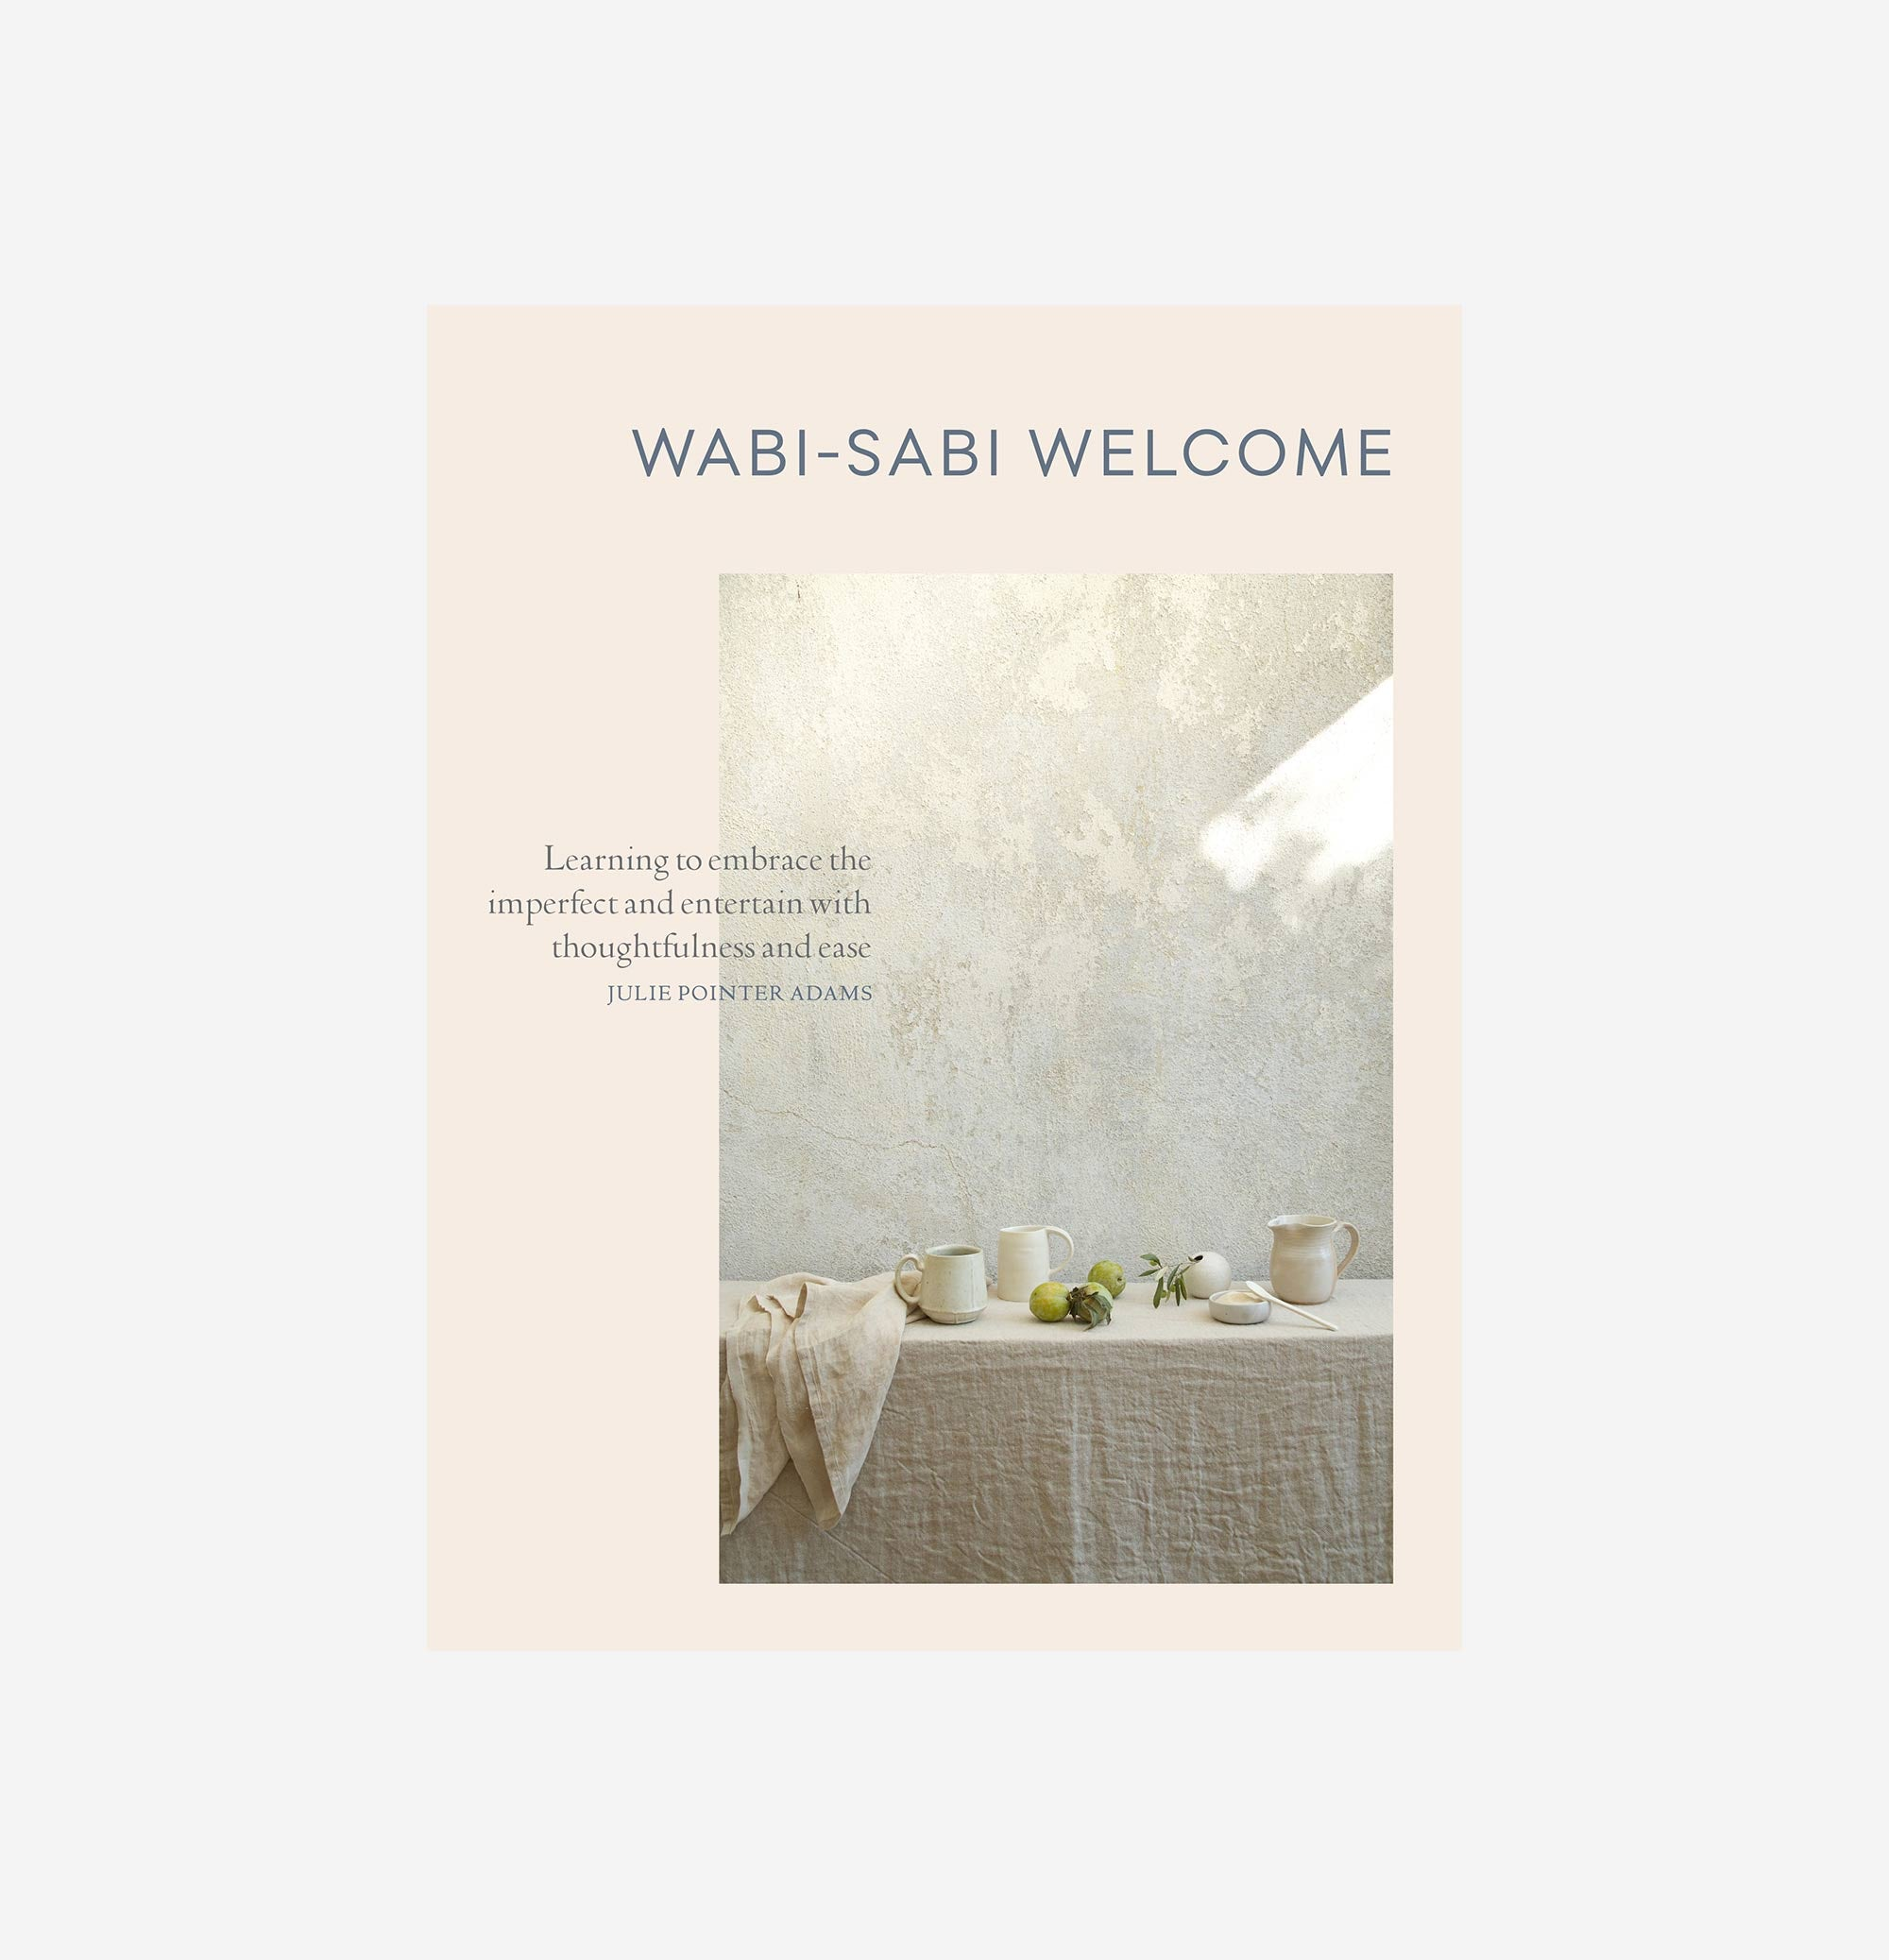 Wabi-sabi welcome - Book - James Ay